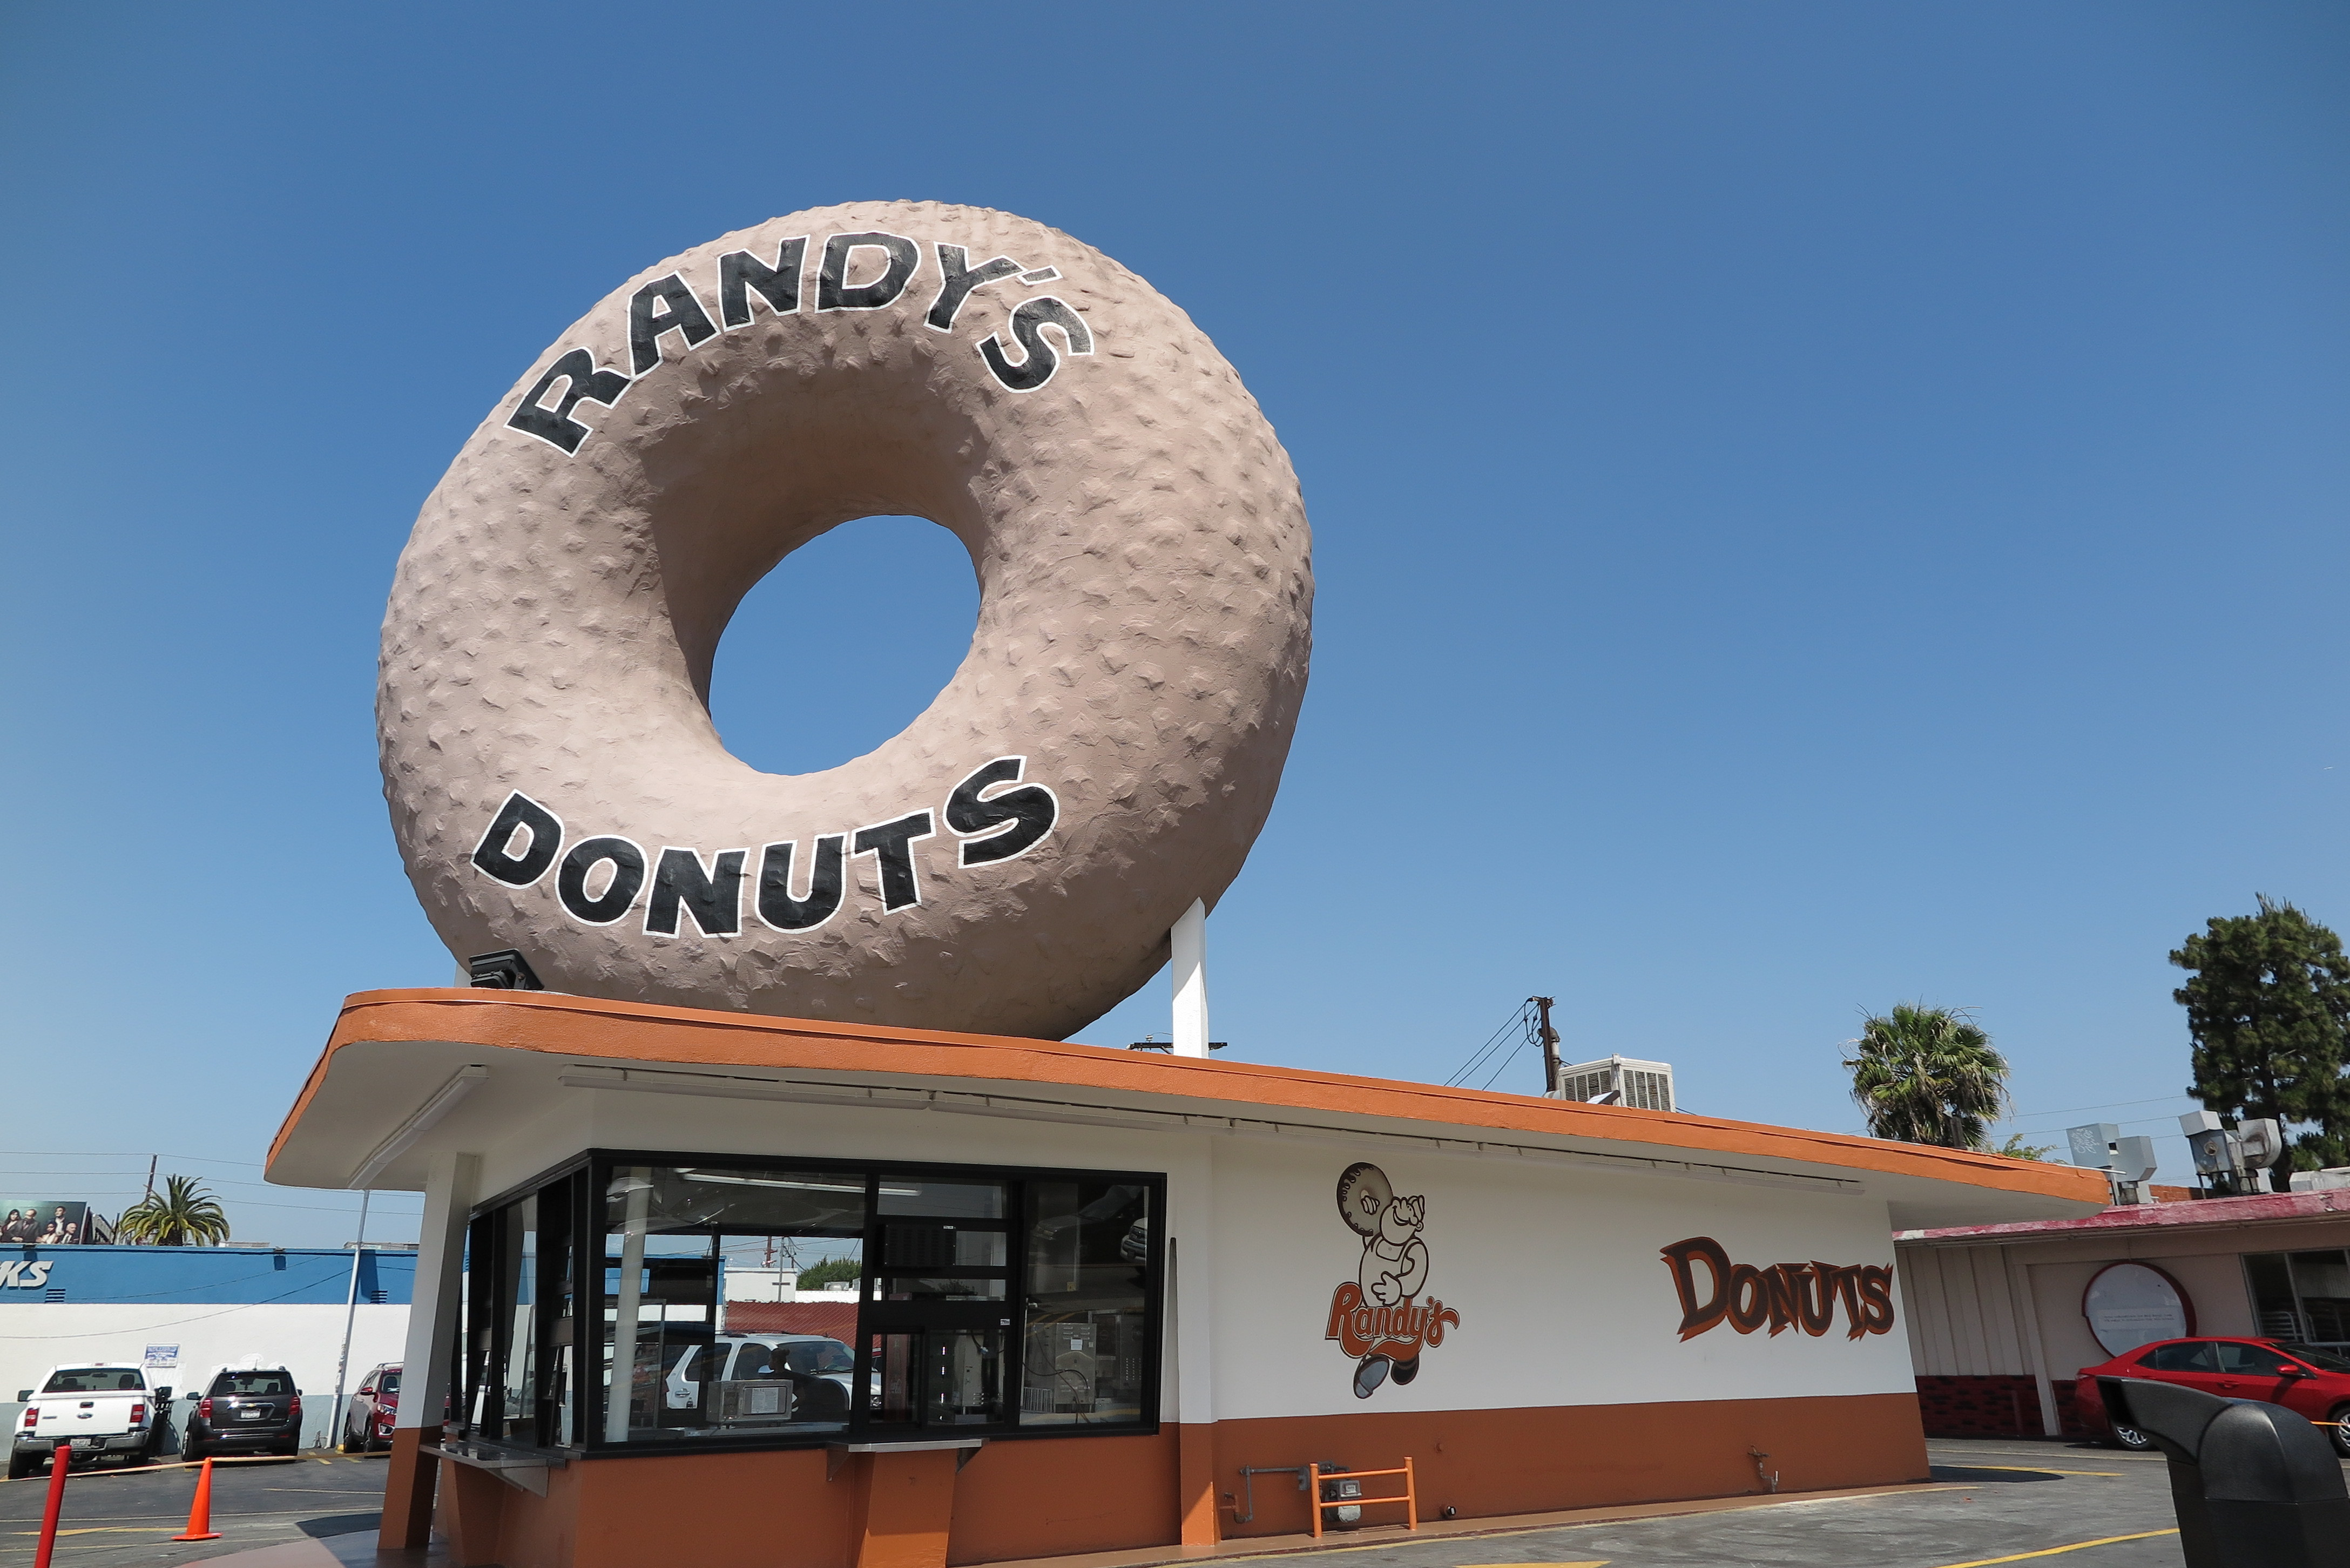 The exterior of a doughnut shop with a giant doughnut on top of it